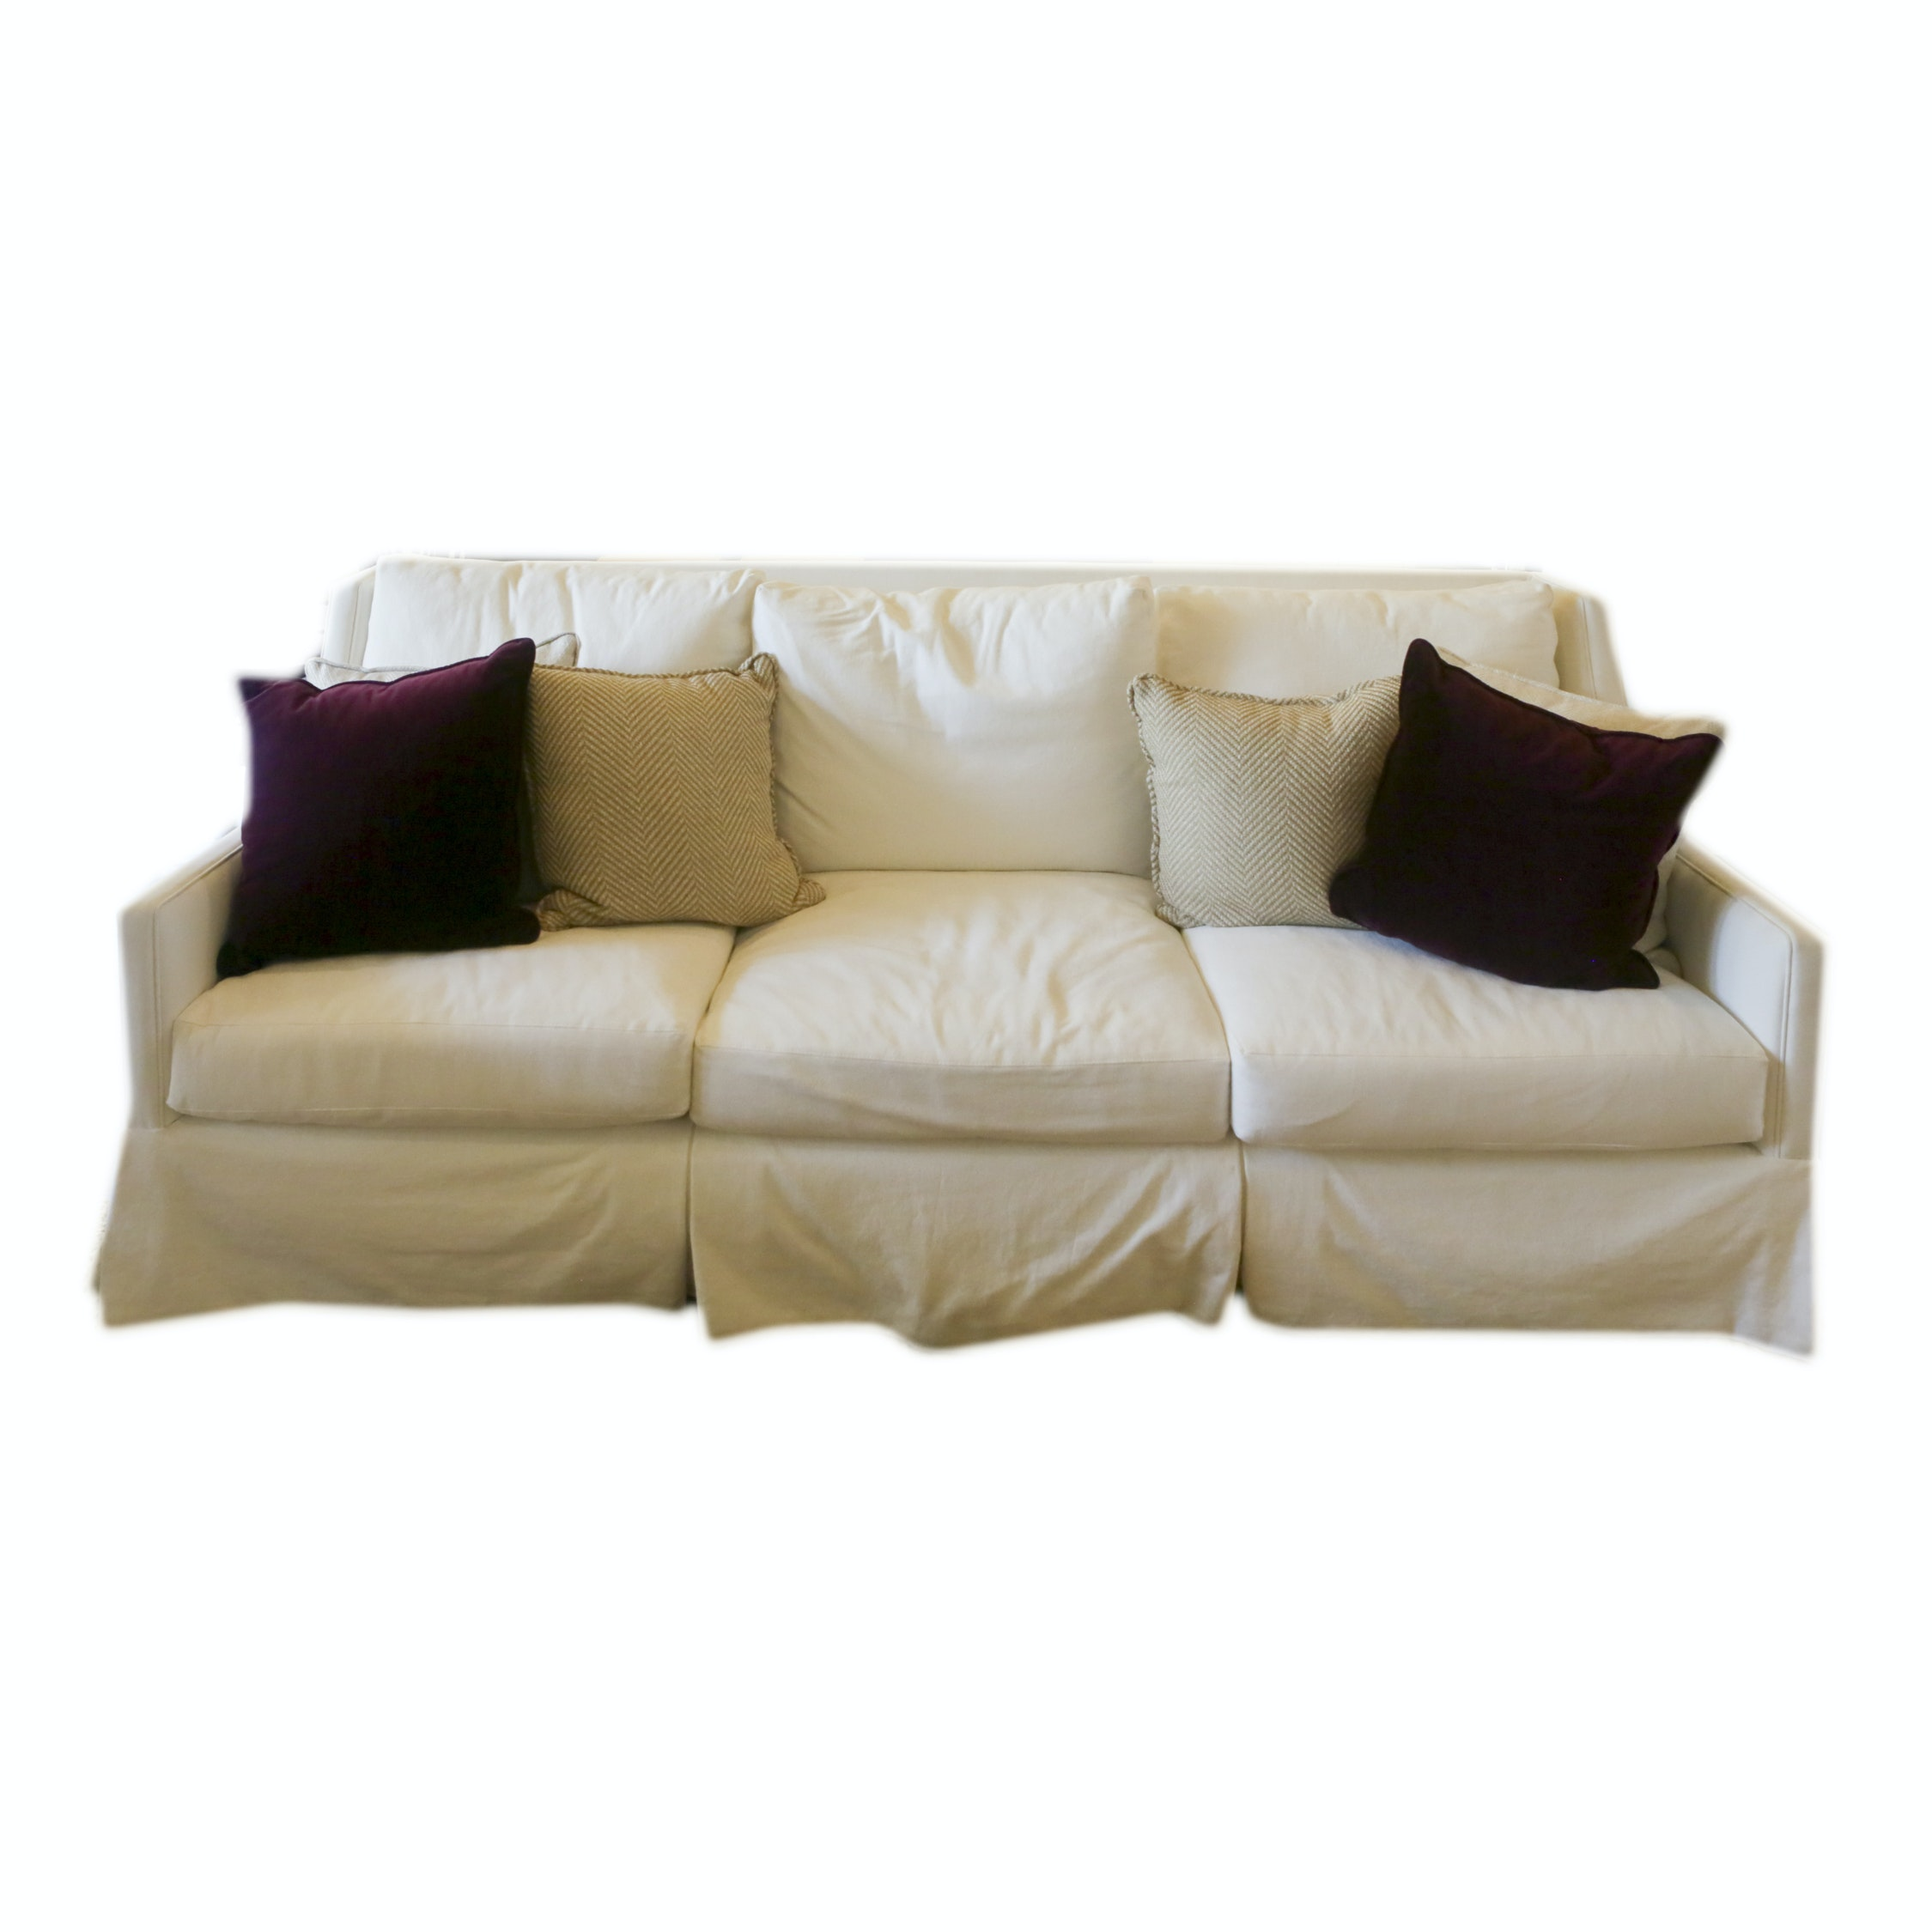 Contemporary White Upholstered Sofa